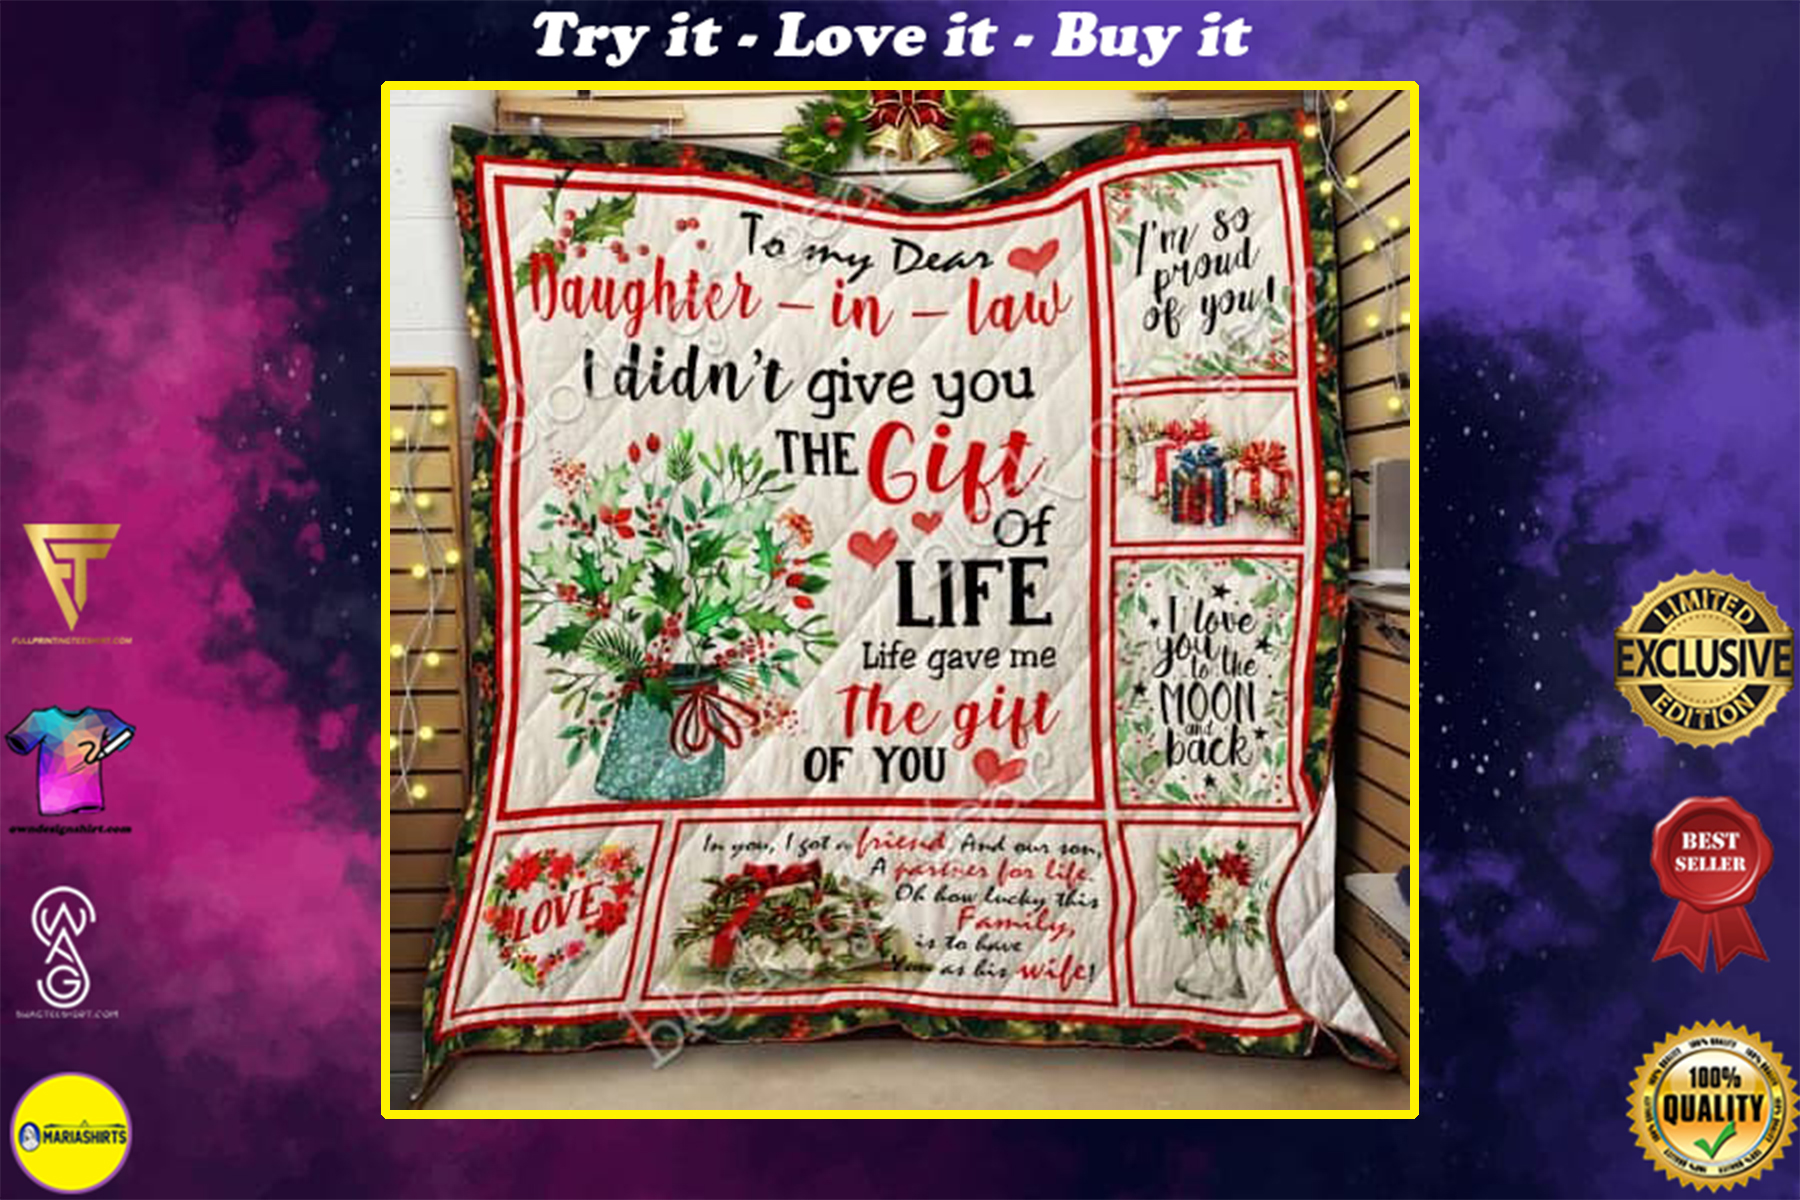 to my dear daughter in law i didnt give you a gift of life quilt